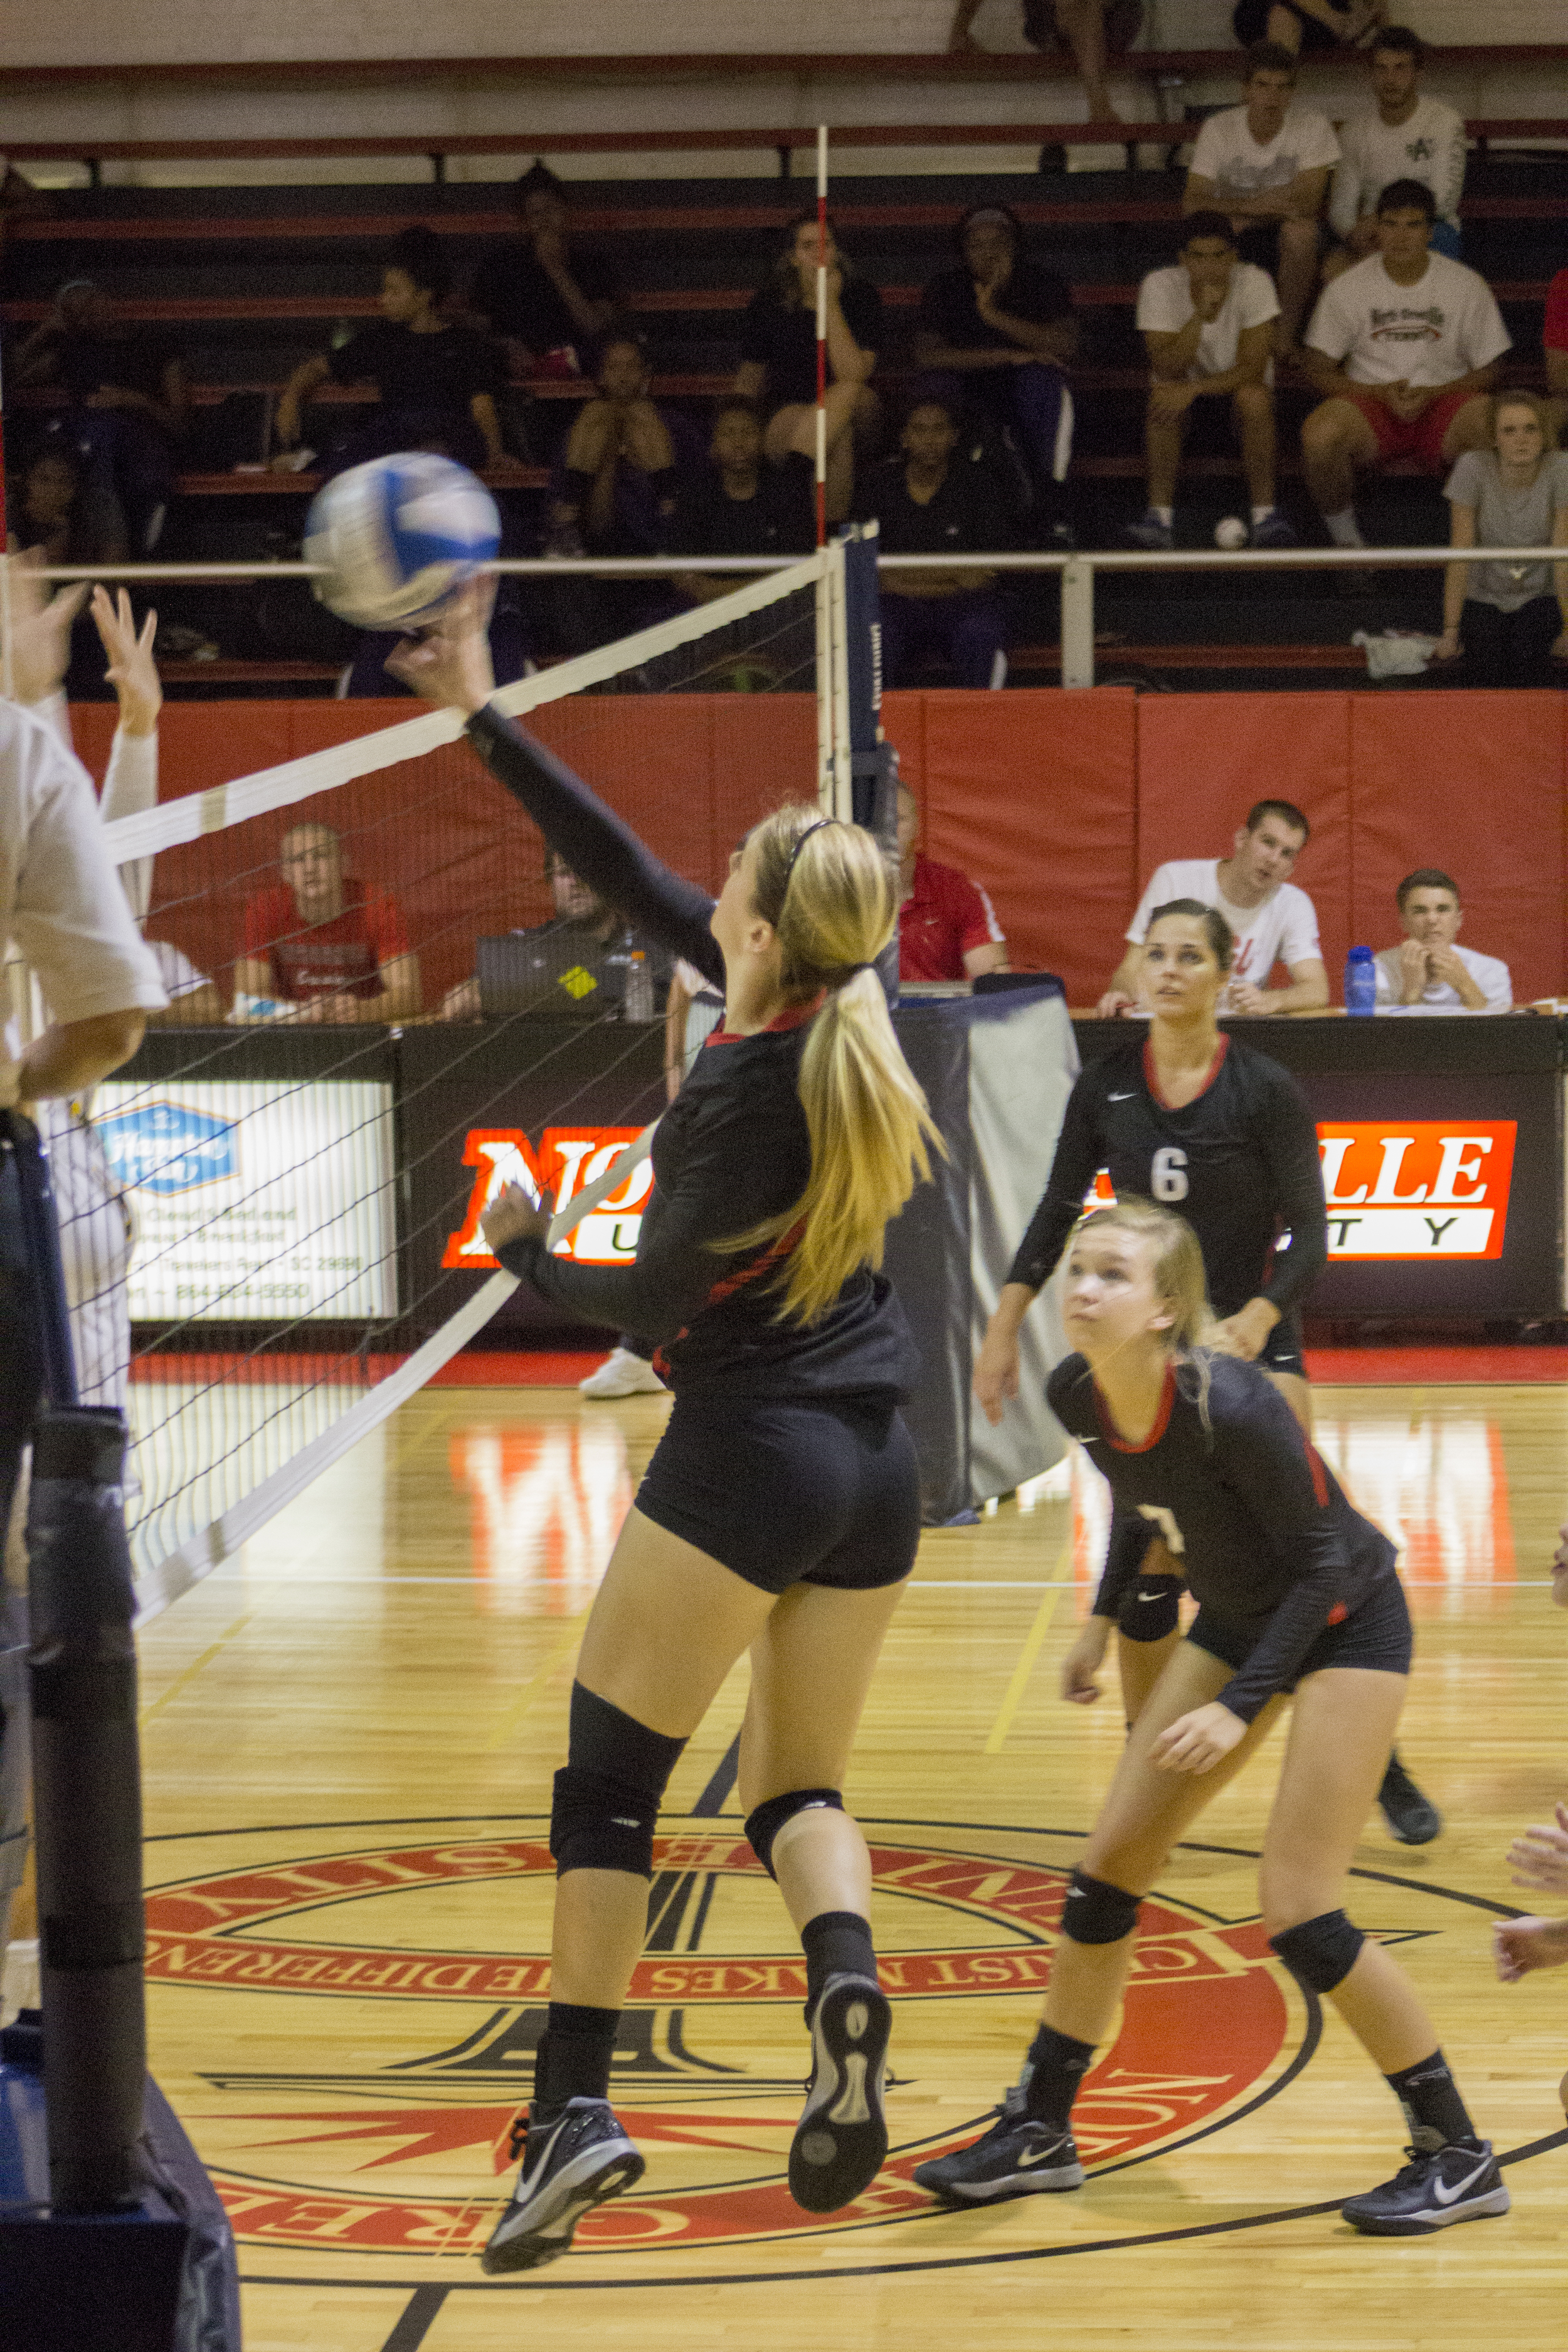 Junior Taylor Dupes taps the ball over the net.